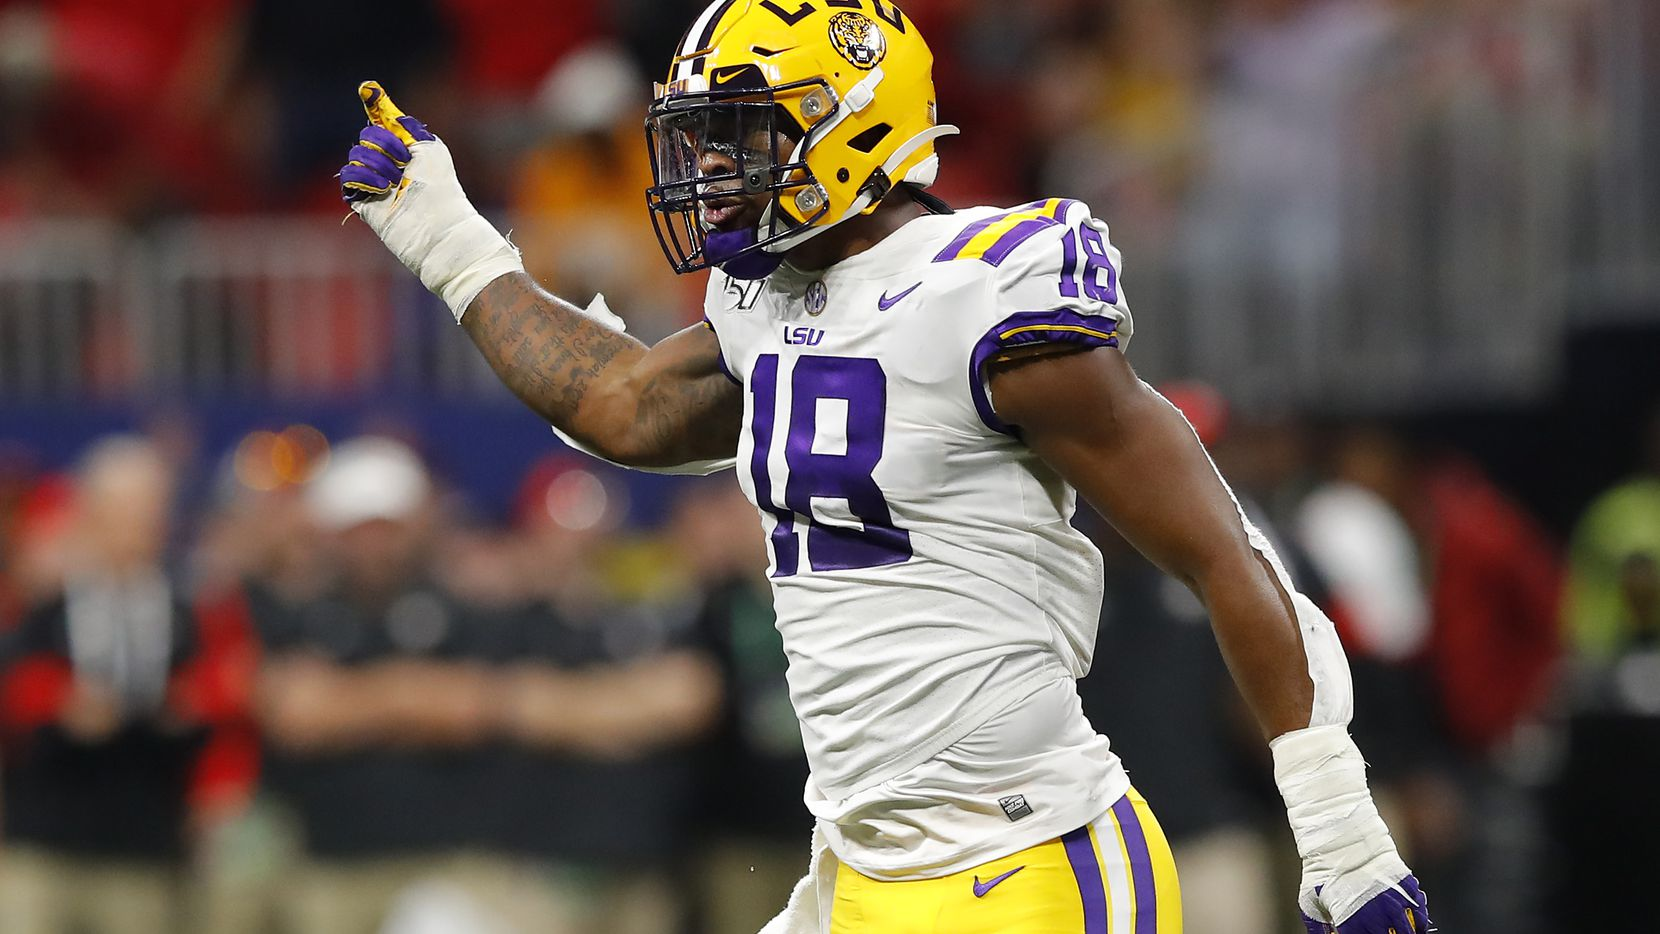 ATLANTA - DEC. 7: LSU pass rusher K'Lavon Chaisson (18) is pictured in the first half against Georgia during the SEC Championship at Mercedes-Benz Stadium on Dec. 7, 2019, in Atlanta.